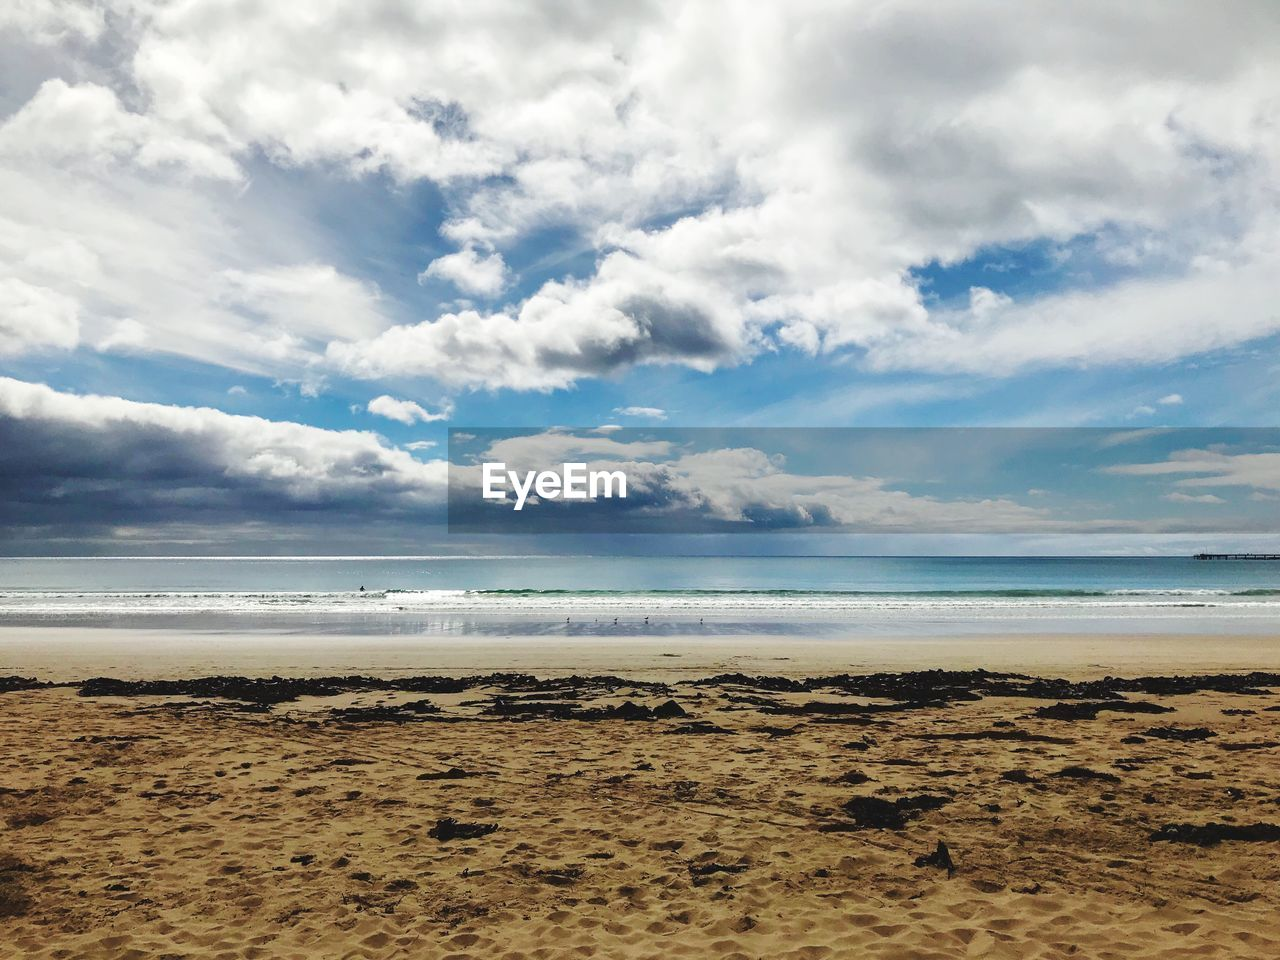 cloud - sky, sky, sea, beauty in nature, scenics - nature, horizon over water, horizon, water, land, tranquil scene, beach, tranquility, sand, no people, day, non-urban scene, nature, idyllic, outdoors